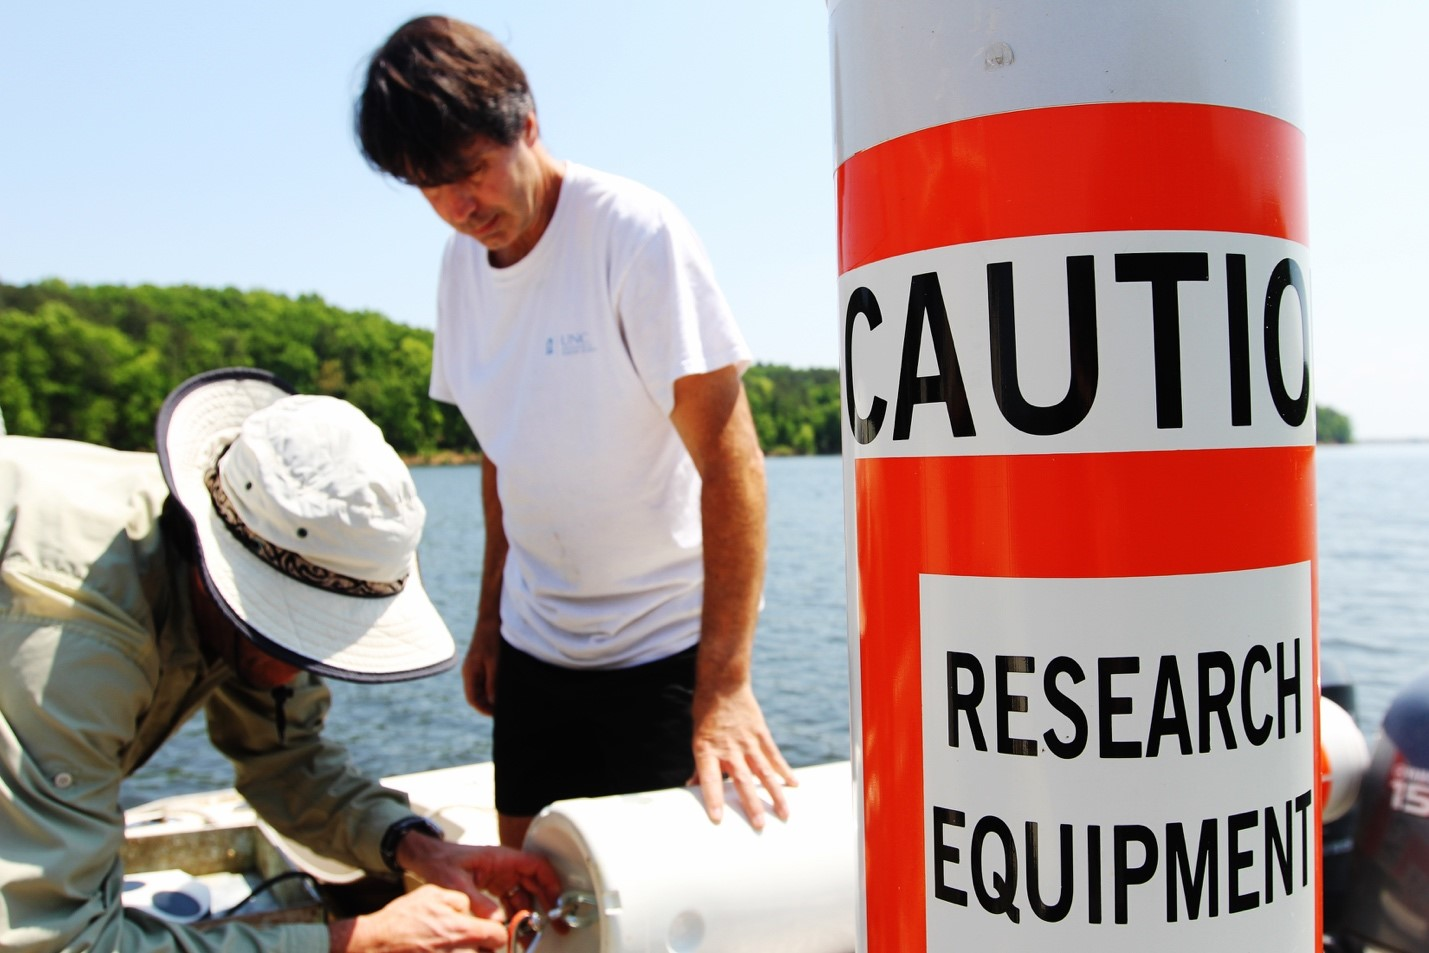 two men prepare equipment before lowering it into the lake to run tests